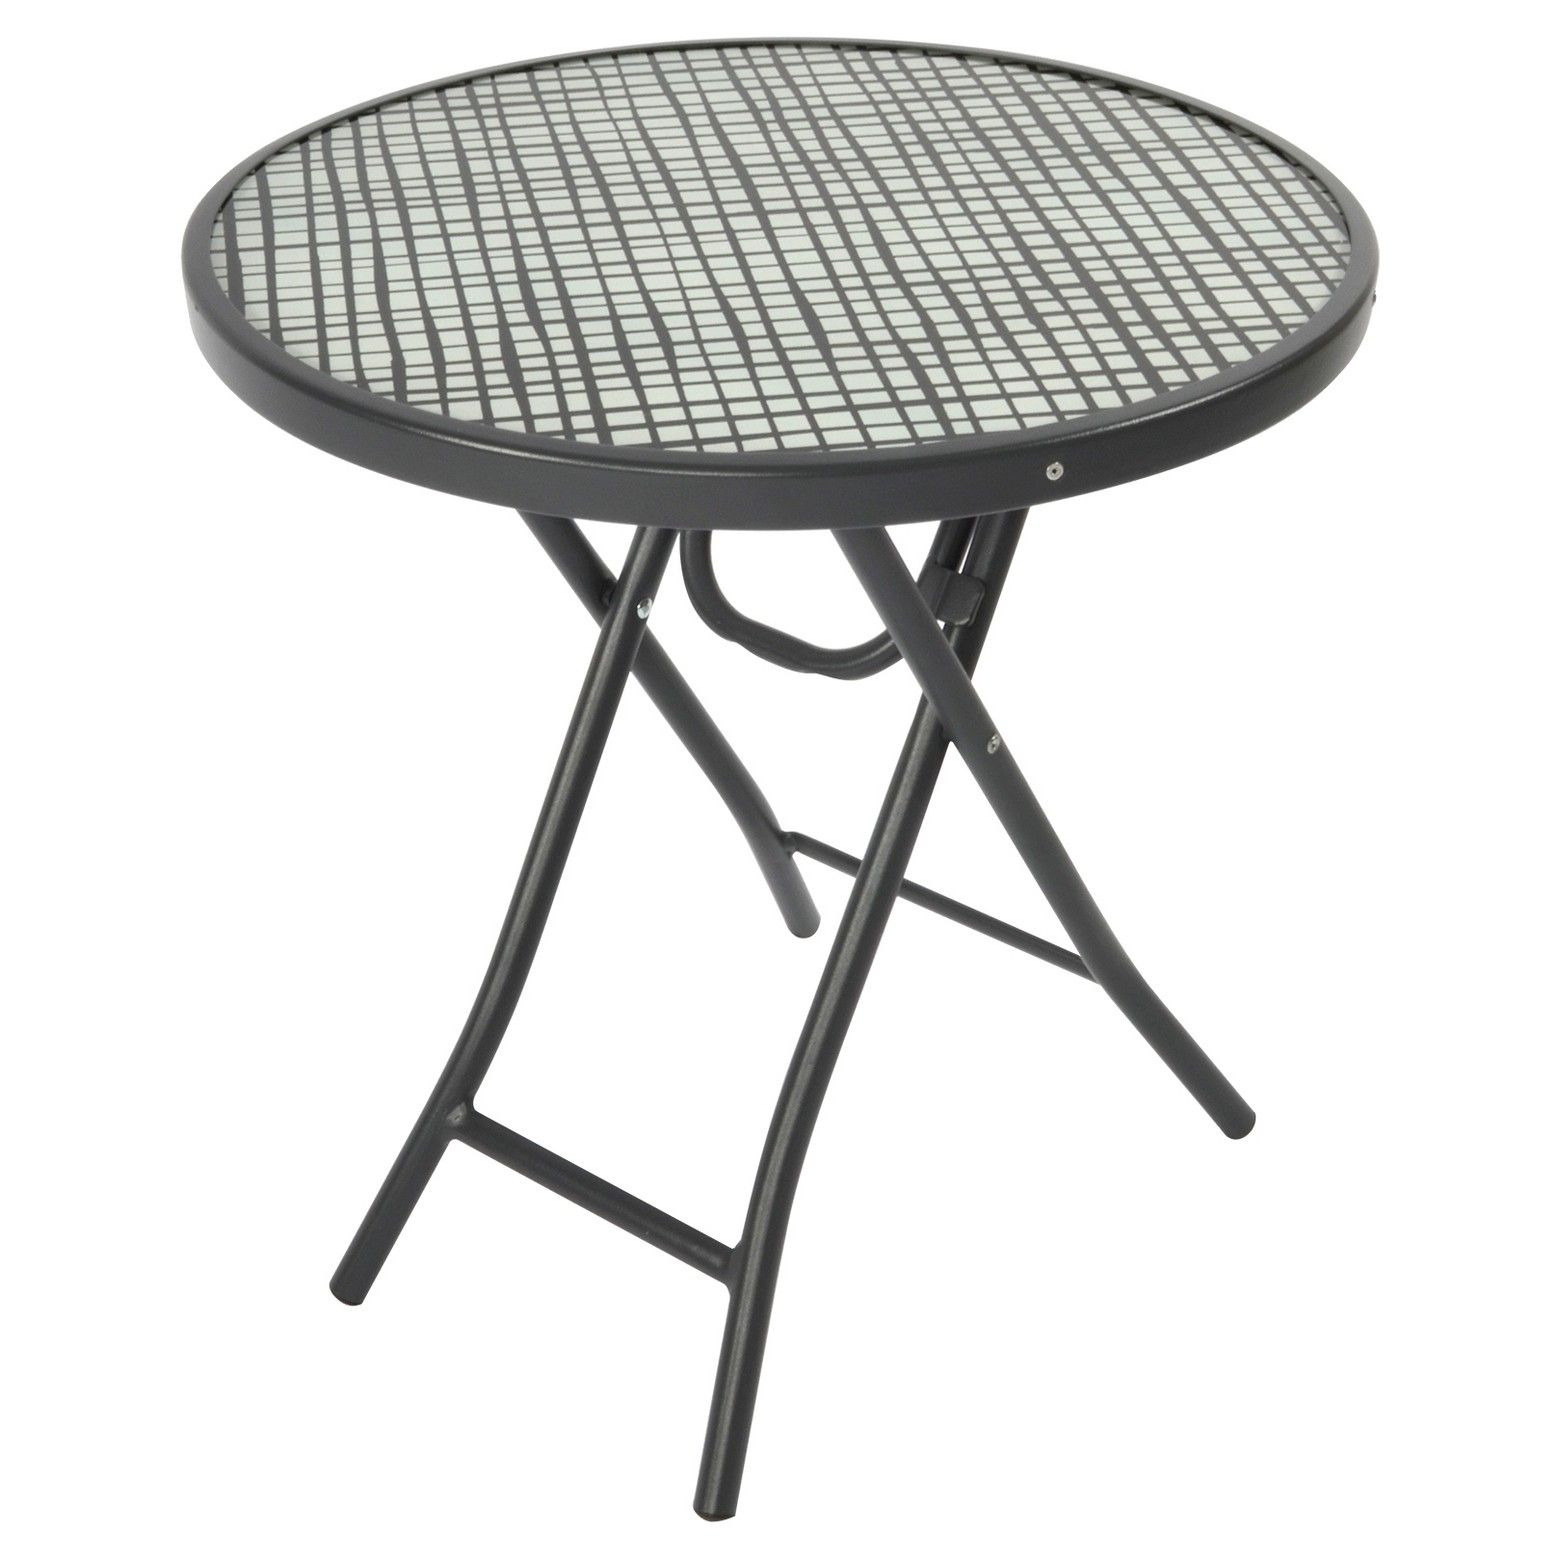 bistro round folding accent table black white pattern room essentials metal patio modern wood coffee standard end height rechargeable battery powered lamps solar west elm